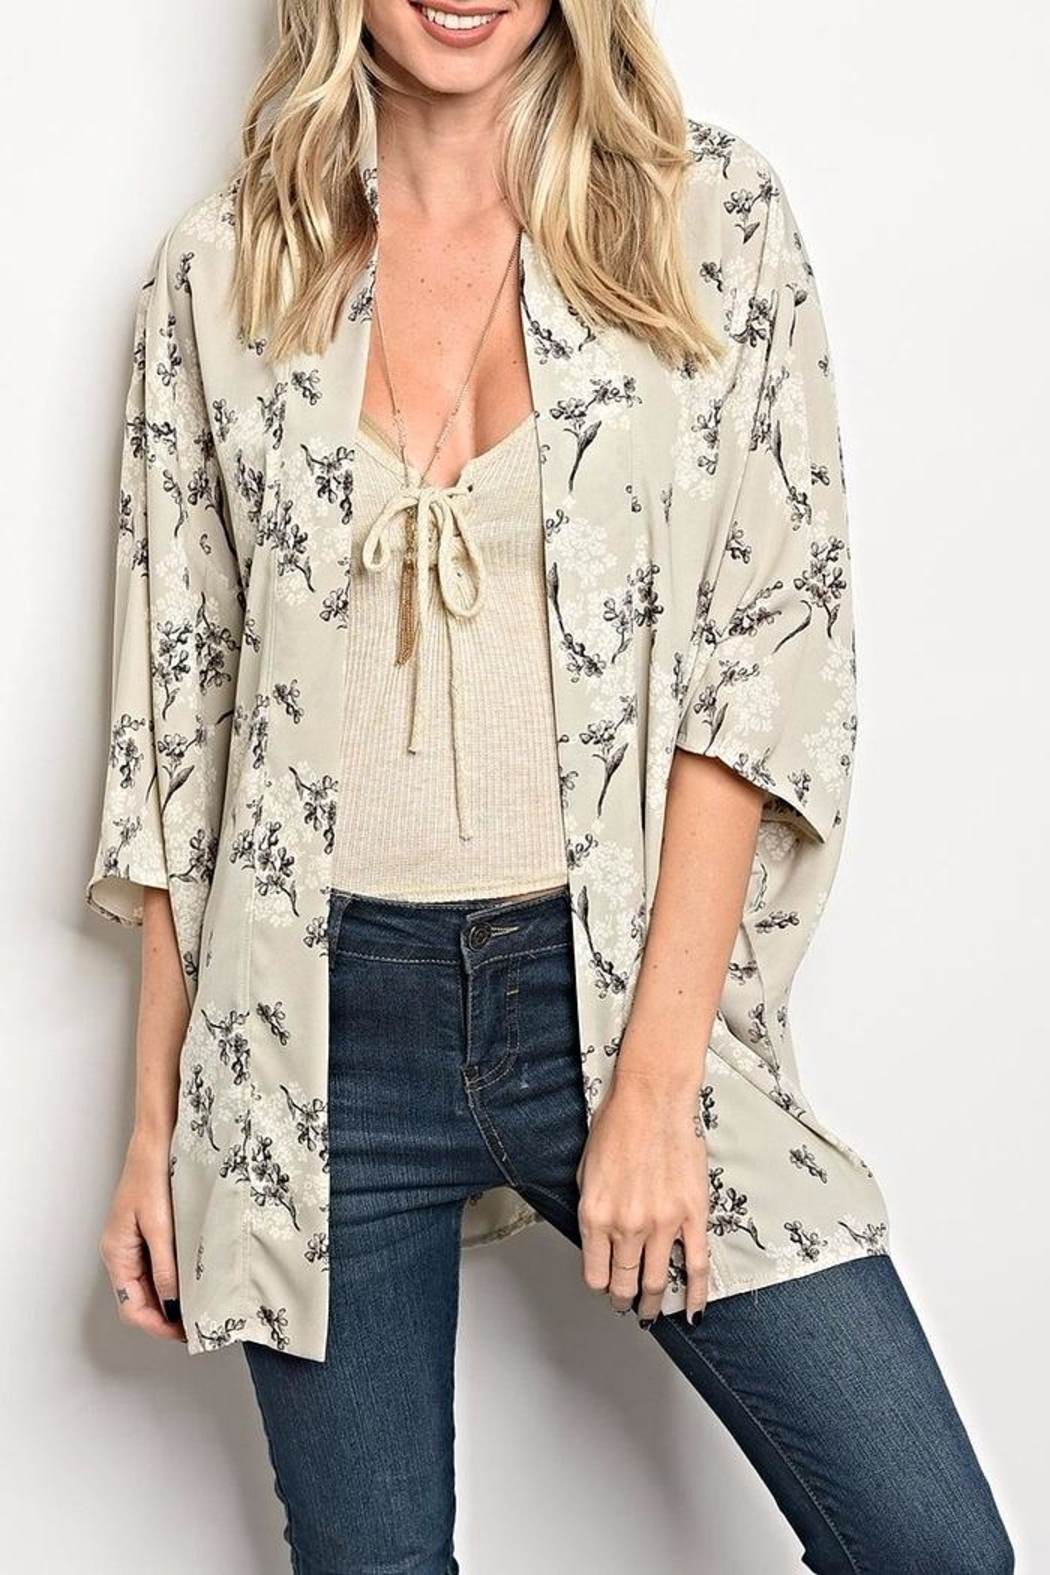 Le Lis Floral Grey Kimono - Front Cropped Image